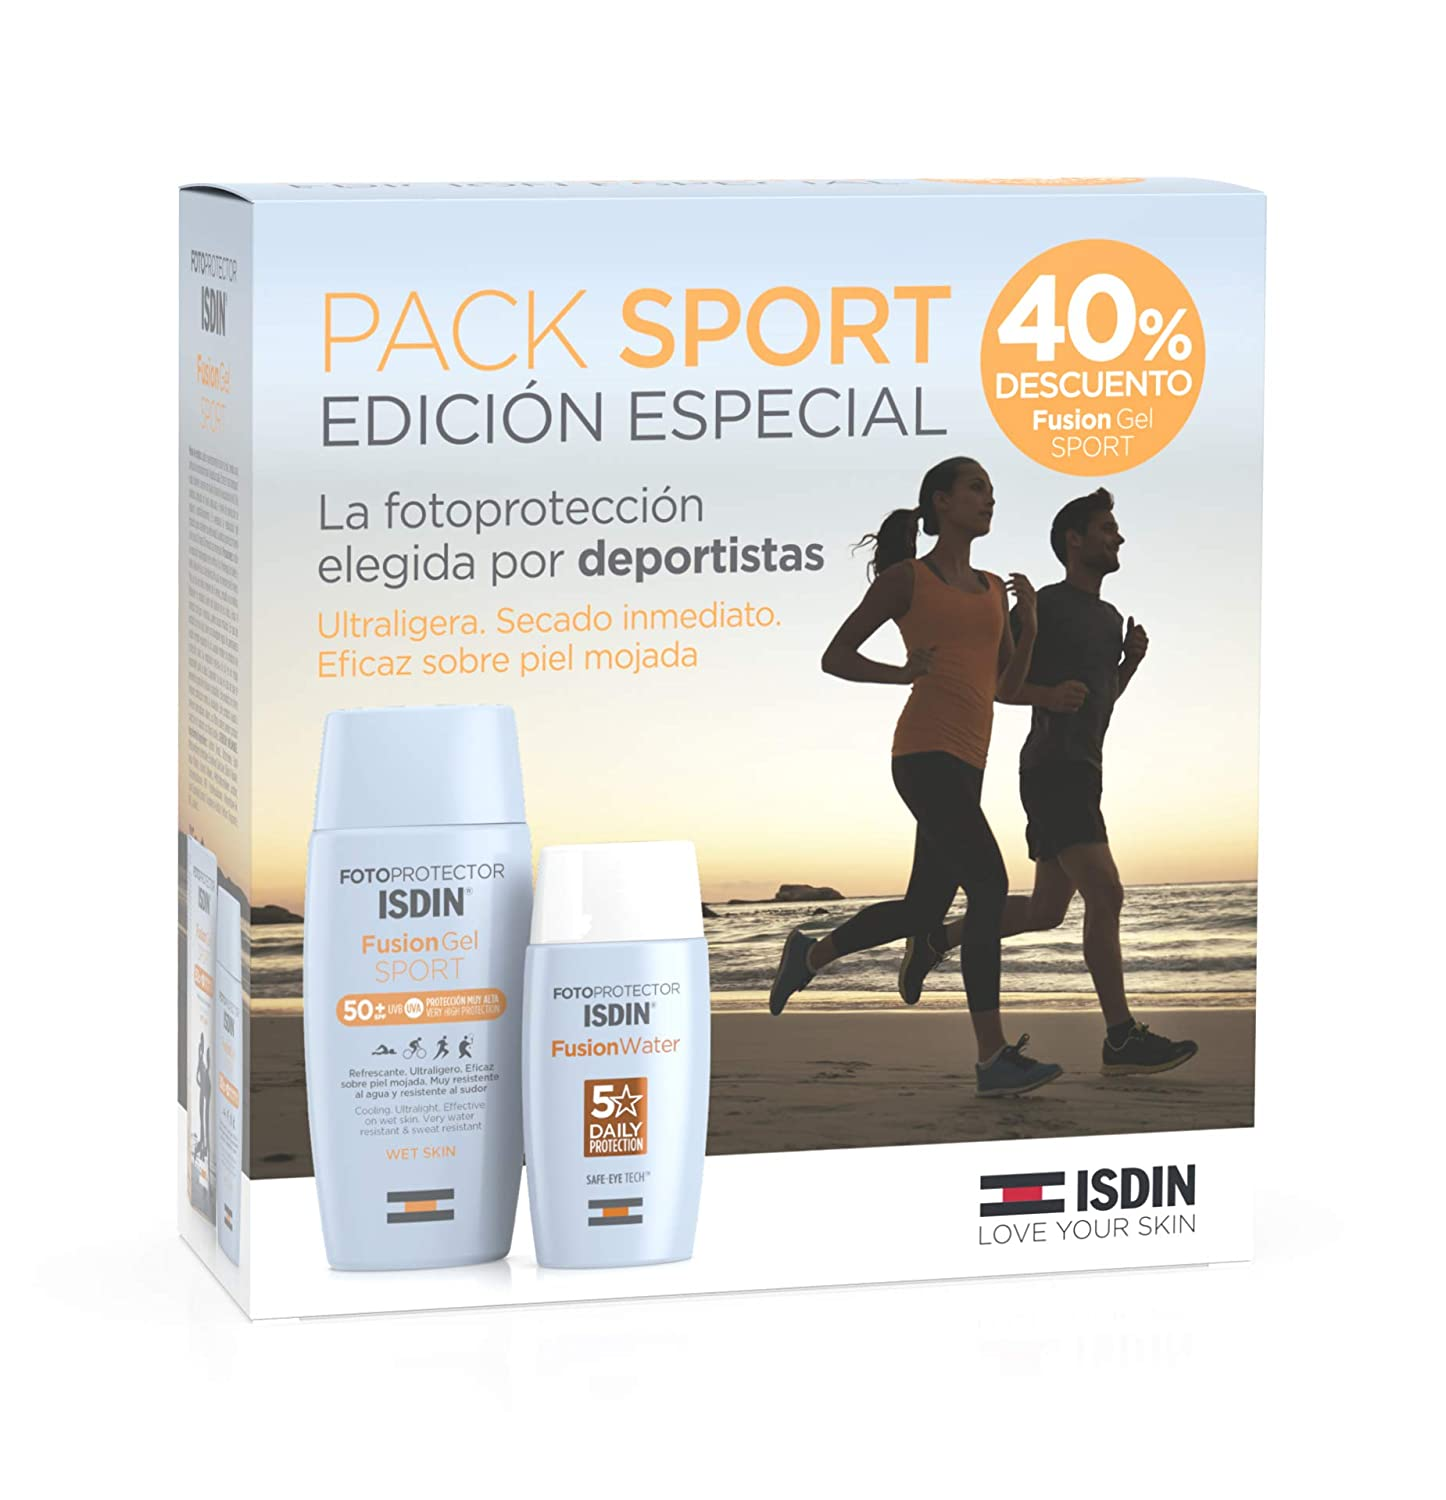 Fotoprotector ISDIN Pack Fusion Water SPF 50 y Fusion Gel SPORT ...